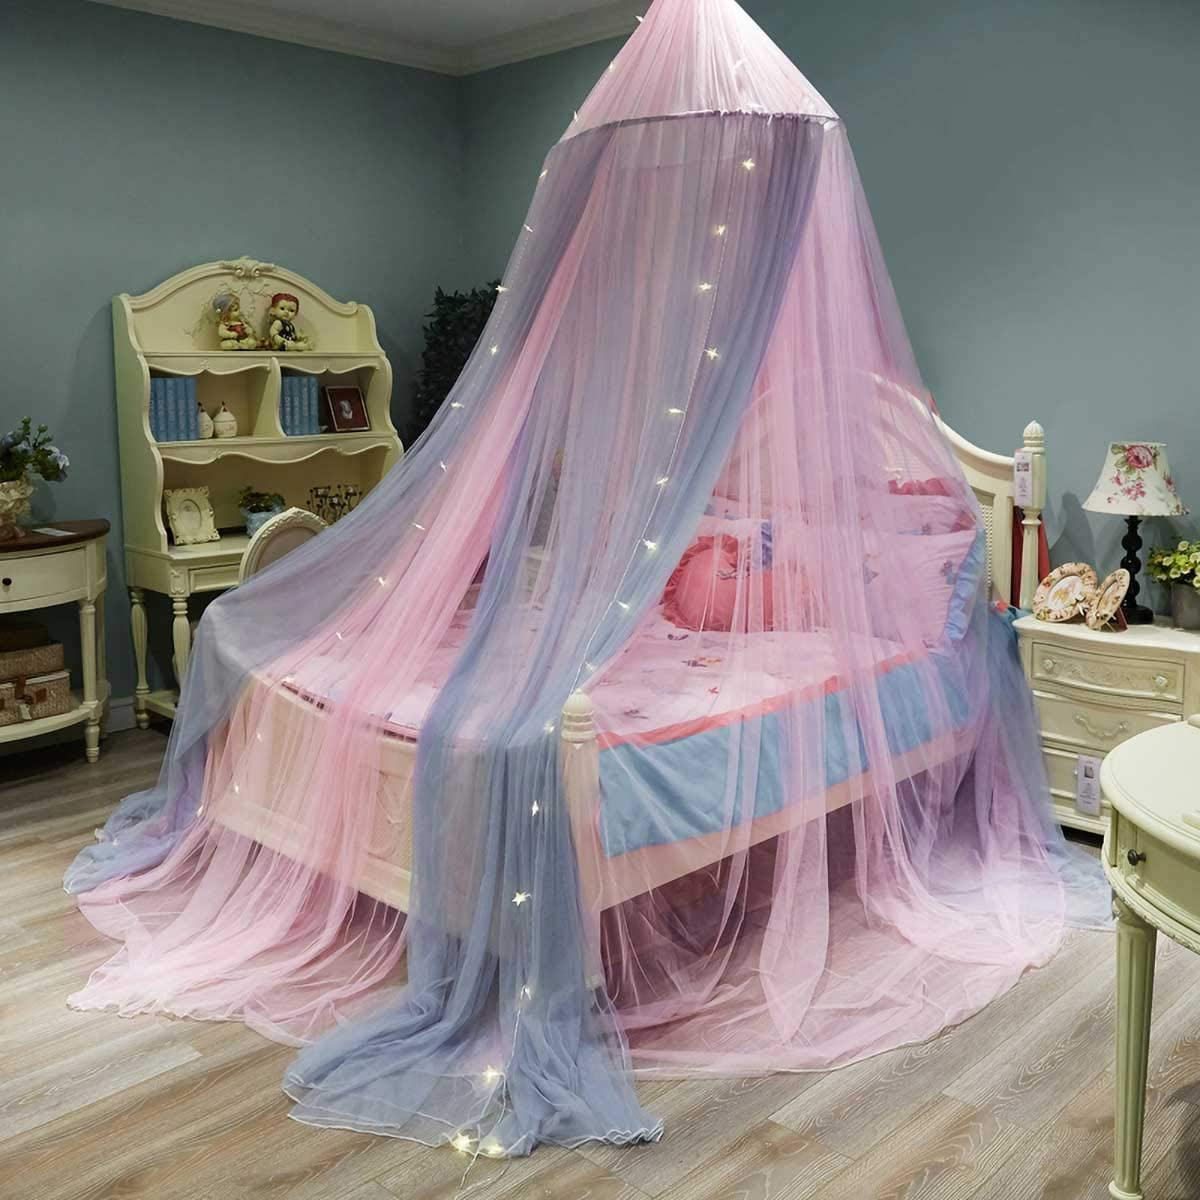 for 0.9M GLXQIJ Large Romantic Girls Princess Mosquito Net Round Dome Curtain Bed Canopy Lace Tent Bedding 2M Bed Universal Size,Orange+Gray